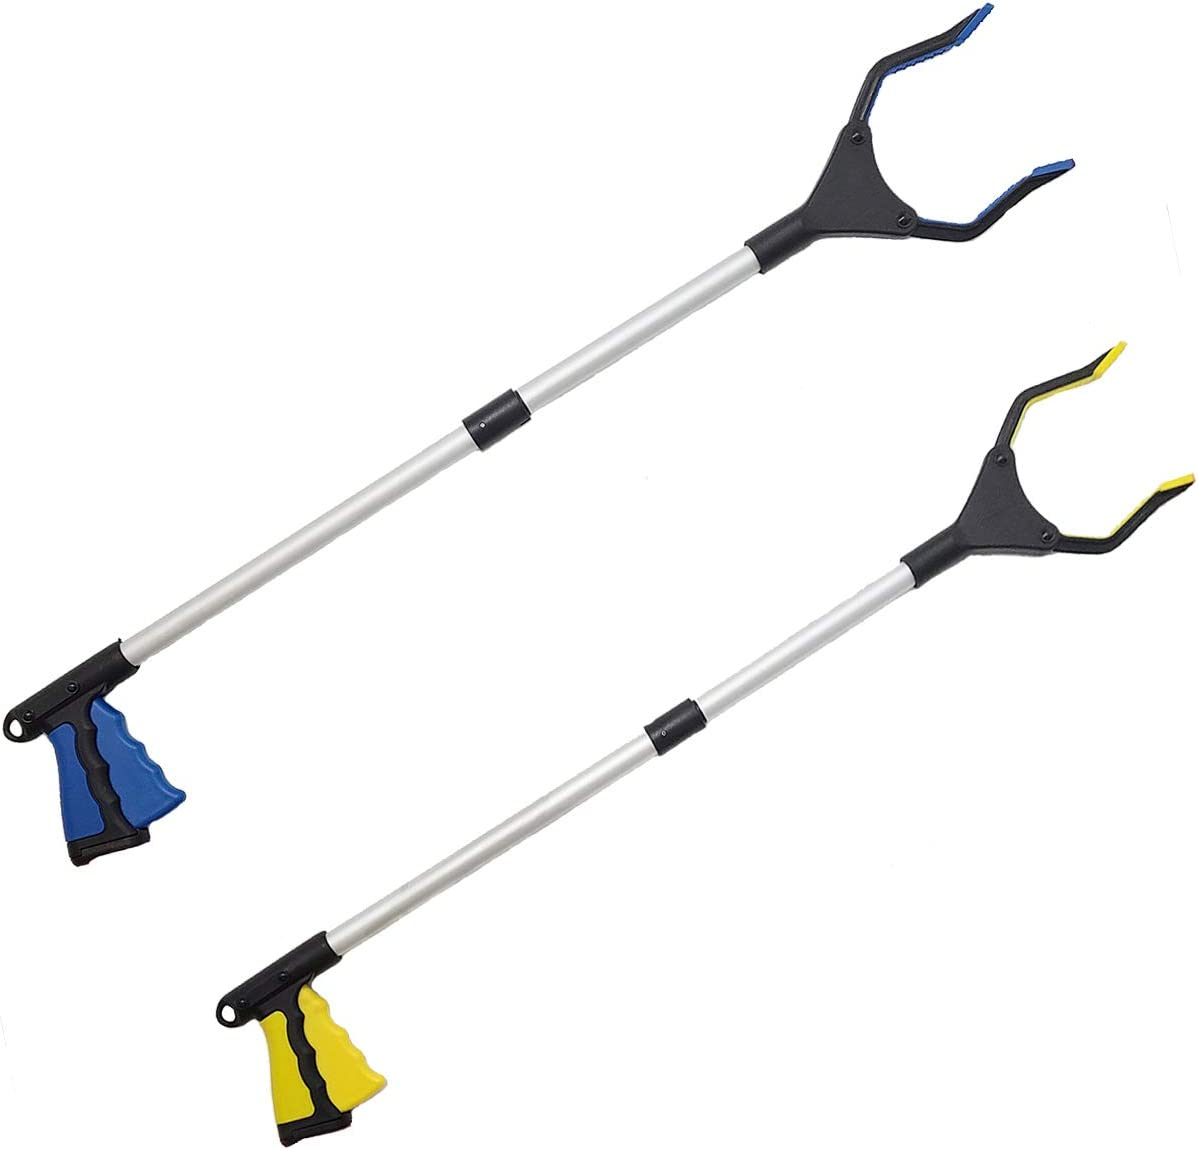 Dzxouui 2-Pack Foldable Grabber Reacher Tool, Pick Up Stick for Store Shelves, Lightweight Extra Long Handy Trash Claw Grabber, 32'' Trash Picker Grabber Tool for Elderly (Blue&Yellow): Health & Personal Care